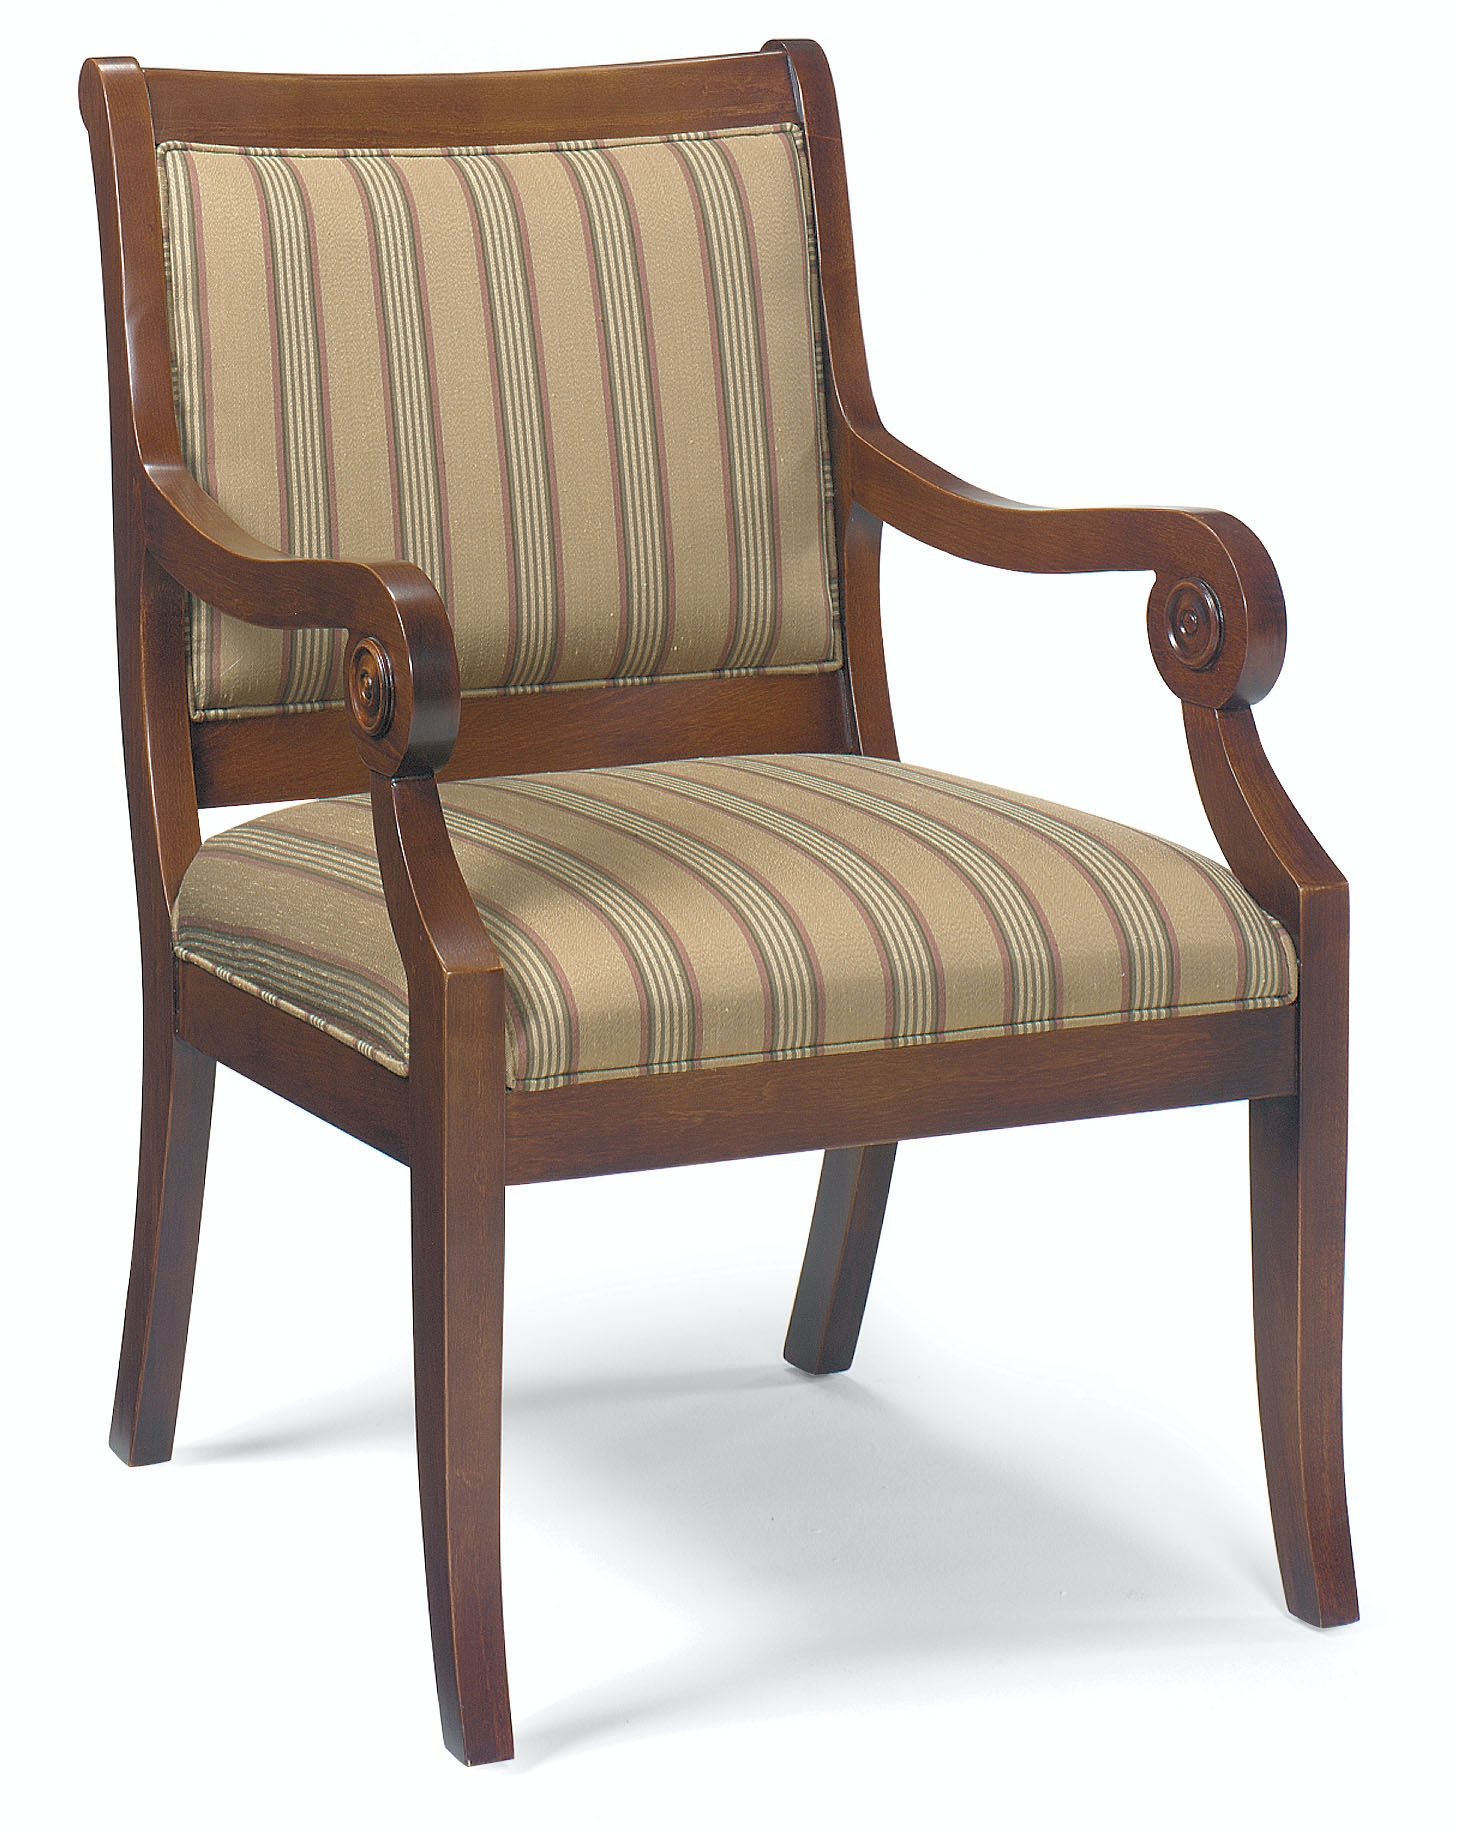 occasional living room chairs fisher price fairfield chair company darby